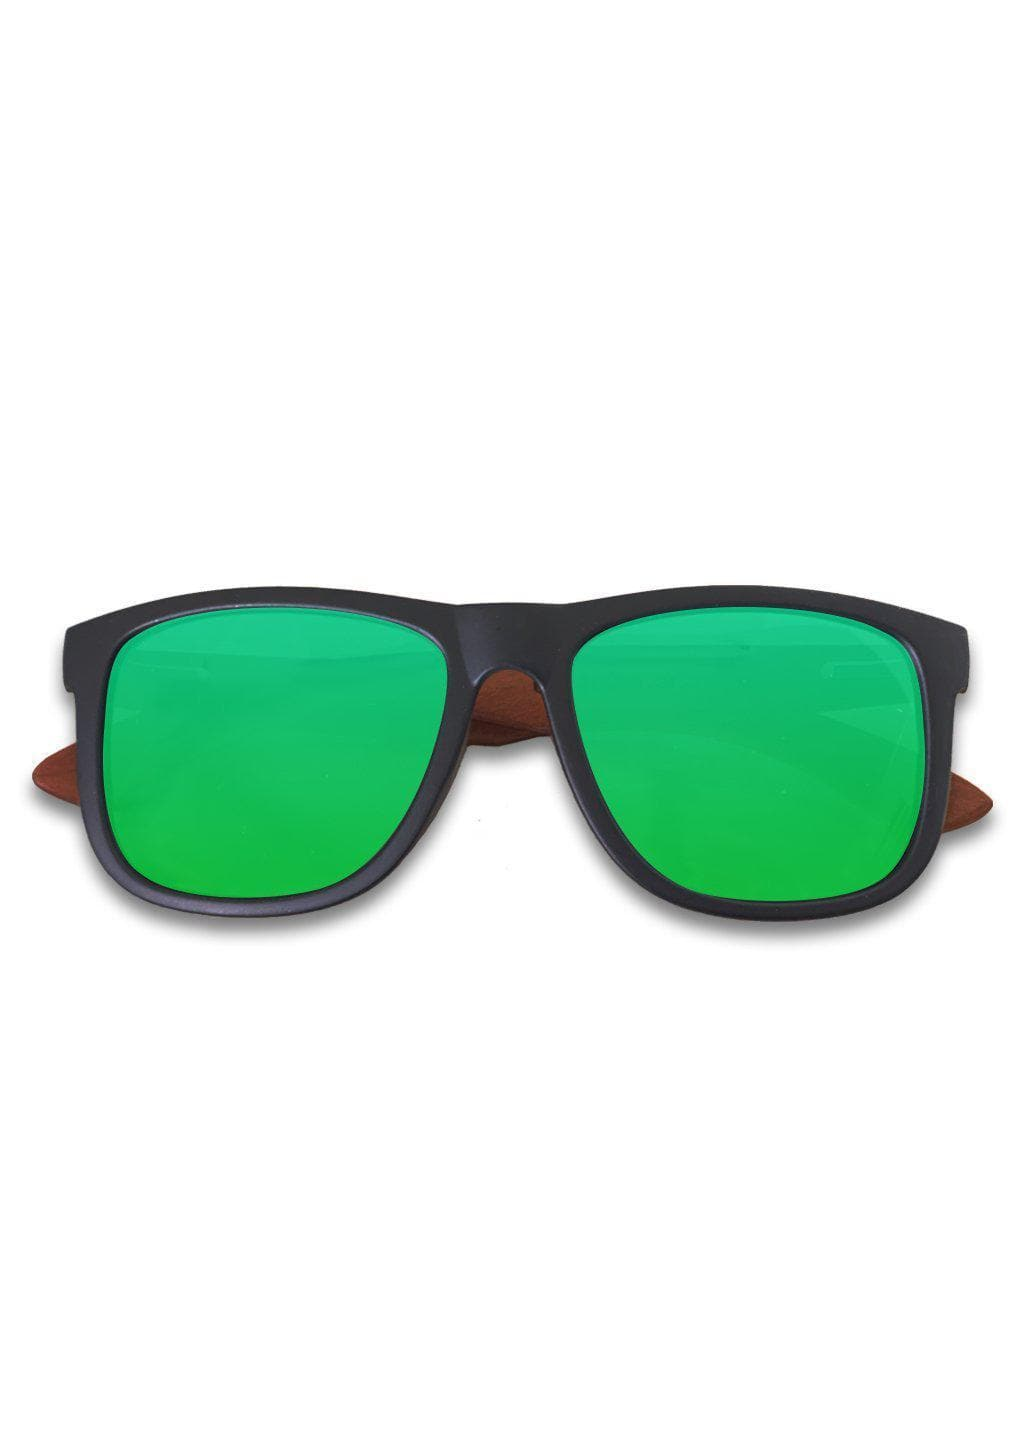 Eyewood Wayfarer - Kiwi - Black frame with green mirror lenses.